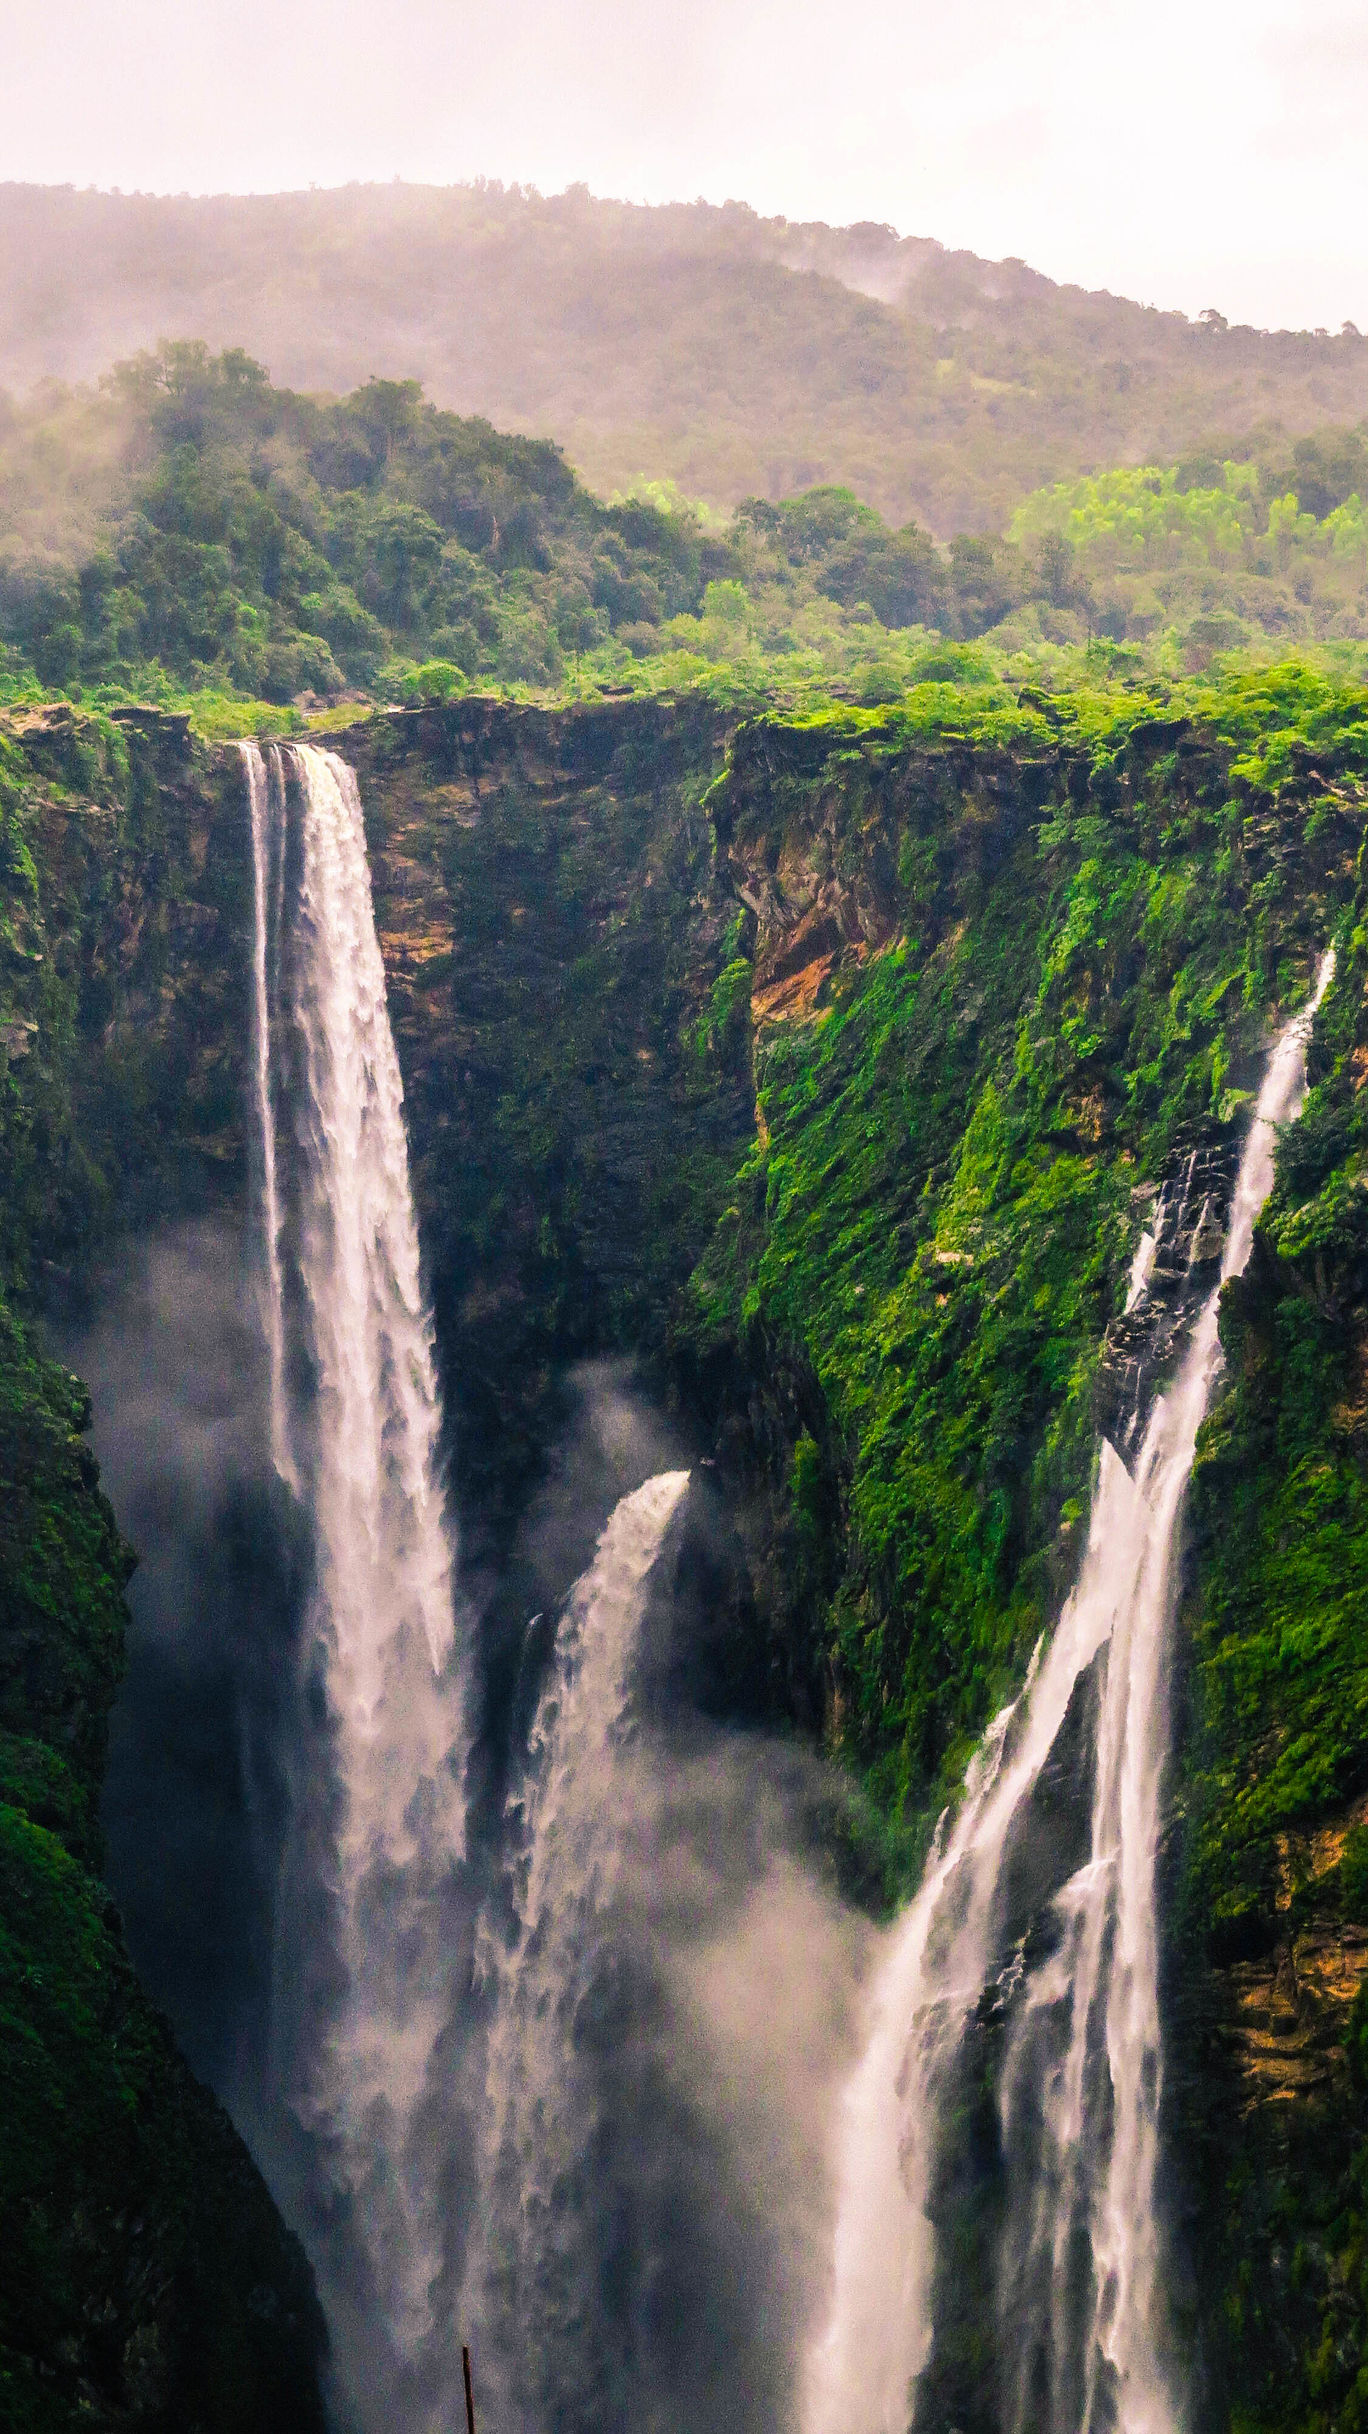 Photo of Jog Falls By Raghav G